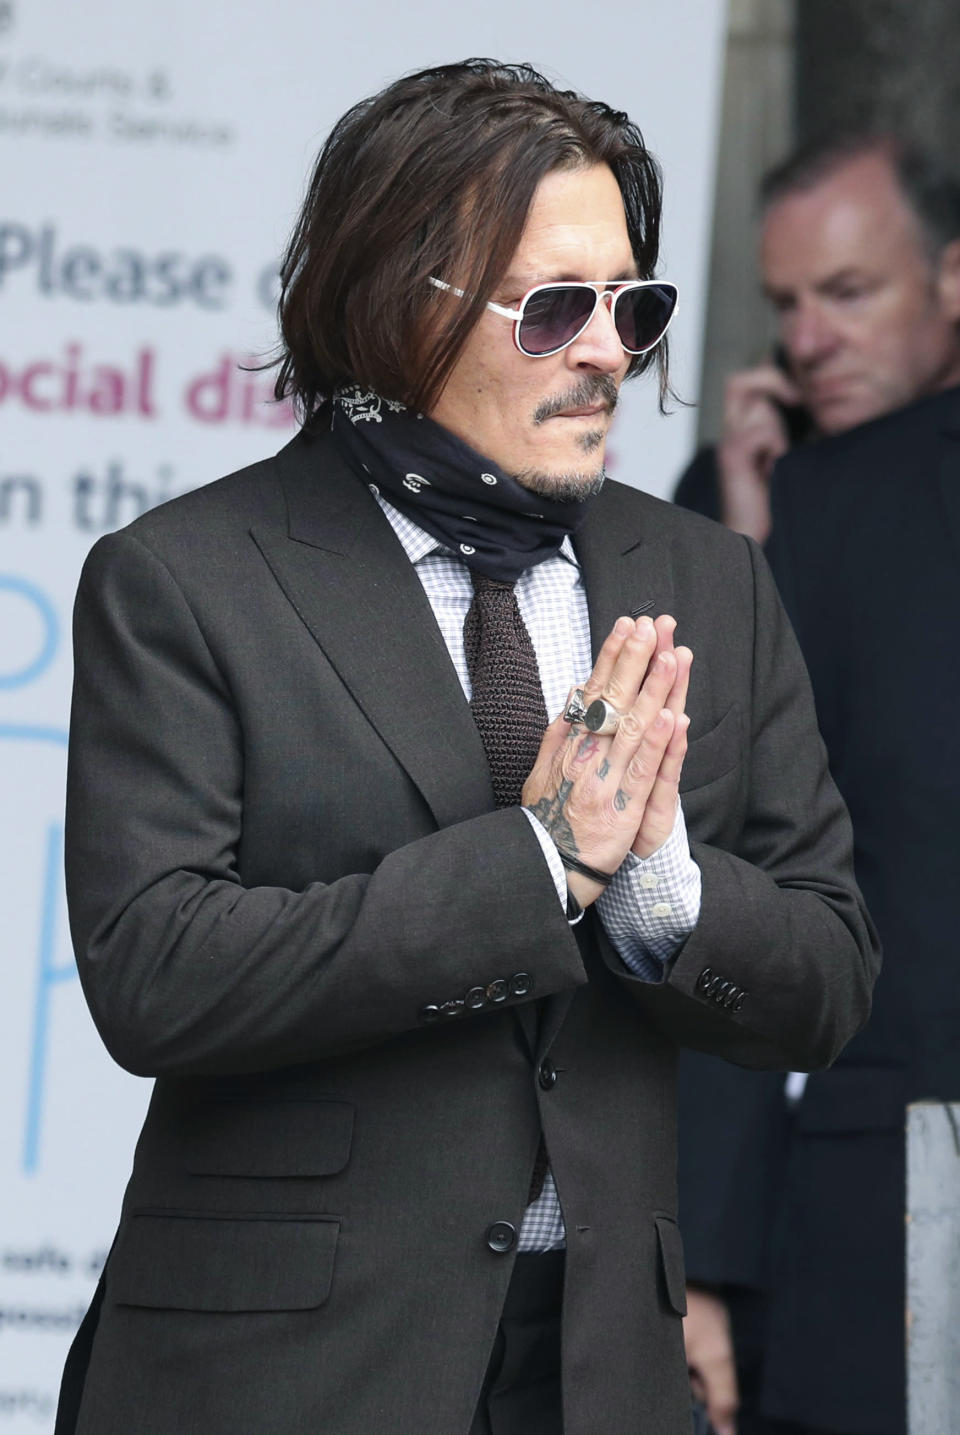 "Actor Johnny Depp gestures as he arrives at the High Court to give evidence in his libel case, in London, Wednesday July 15, 2020. Depp is suing News Group Newspapers, publisher of The Sun, and the paper's executive editor, Dan Wootton, over an April 2018 article that called him a ""wife-beater."" The Sun's defense relies on a total of 14 allegations by Amber Heard of Depp's violence. He strongly denies all of them. ( Jonathan Brady/PA via AP)"